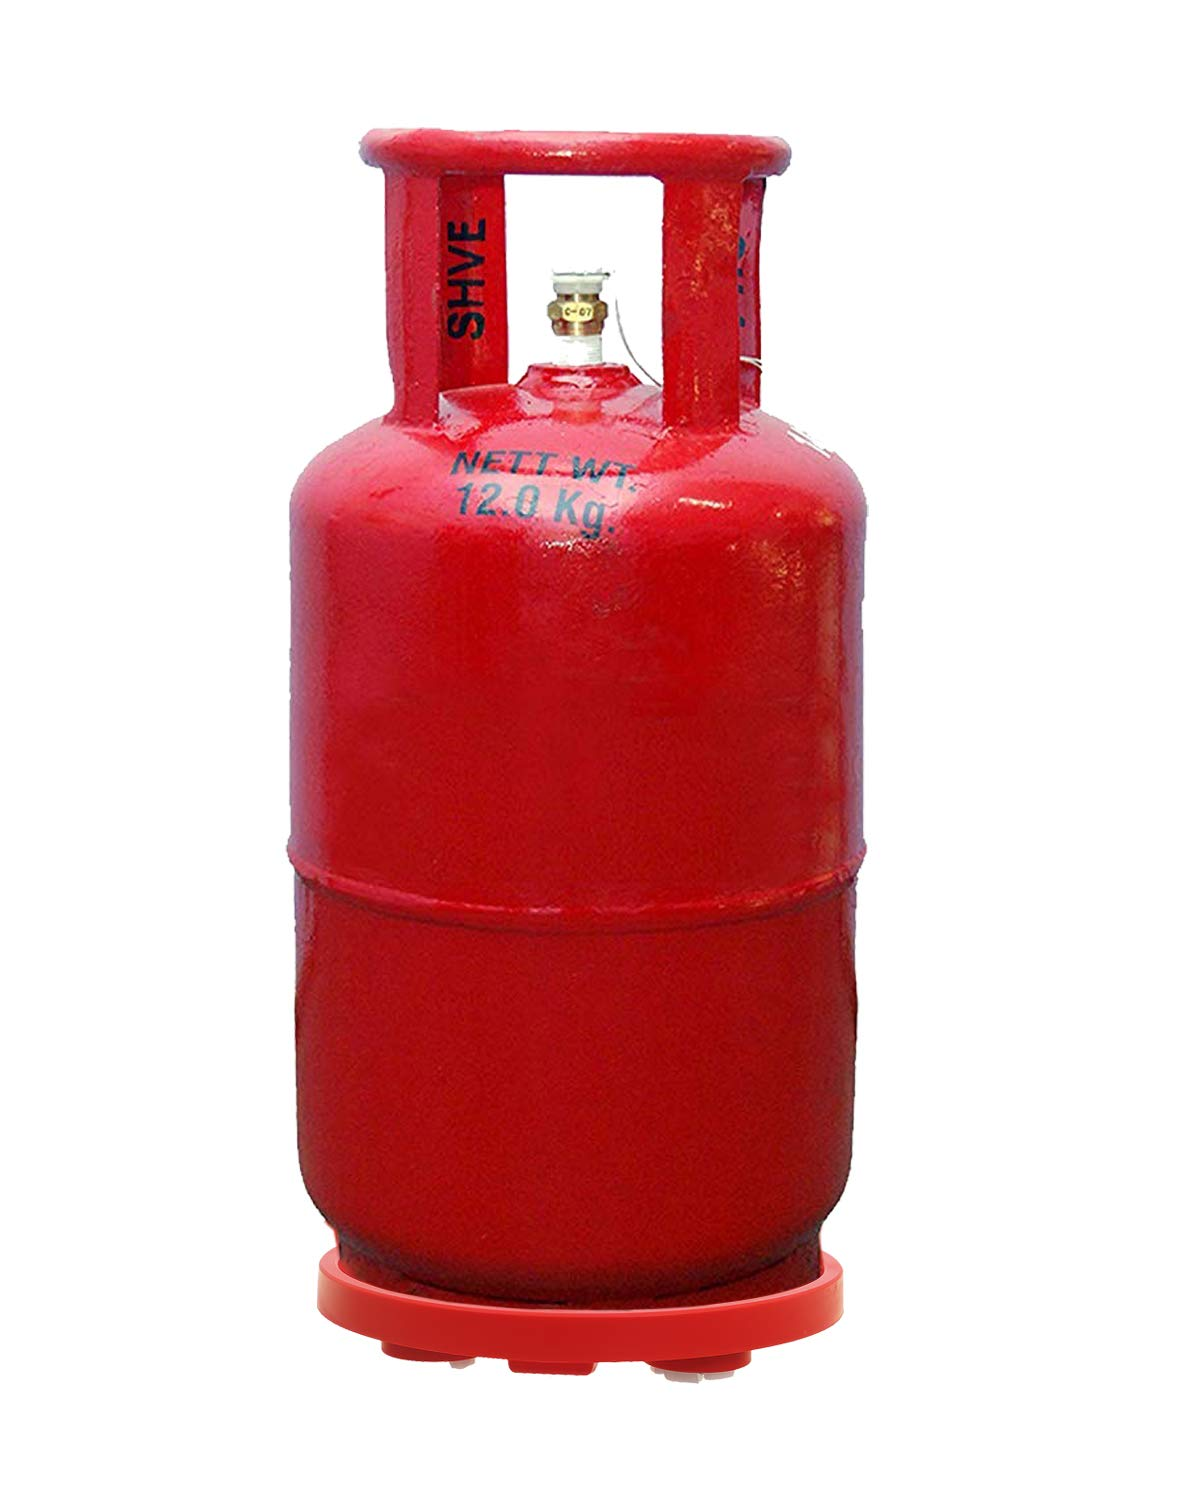 LPG Cylinder Price shows a sudden hike